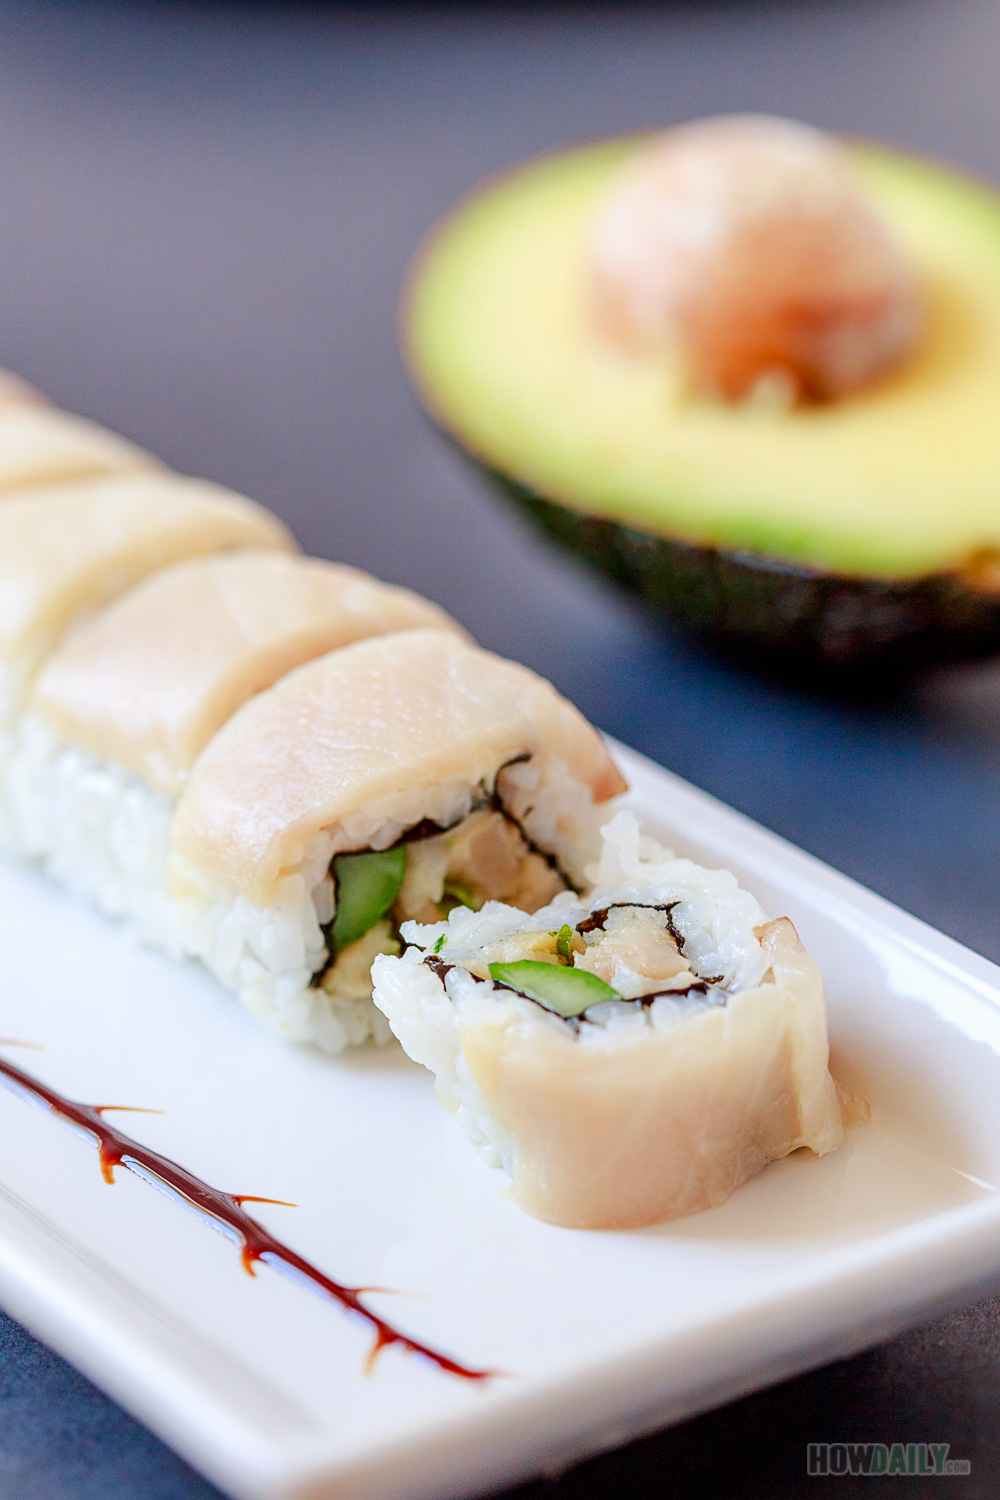 Spicy yellowtail negi hamachi maki sushi roll recipe for Yellowtail fish sushi